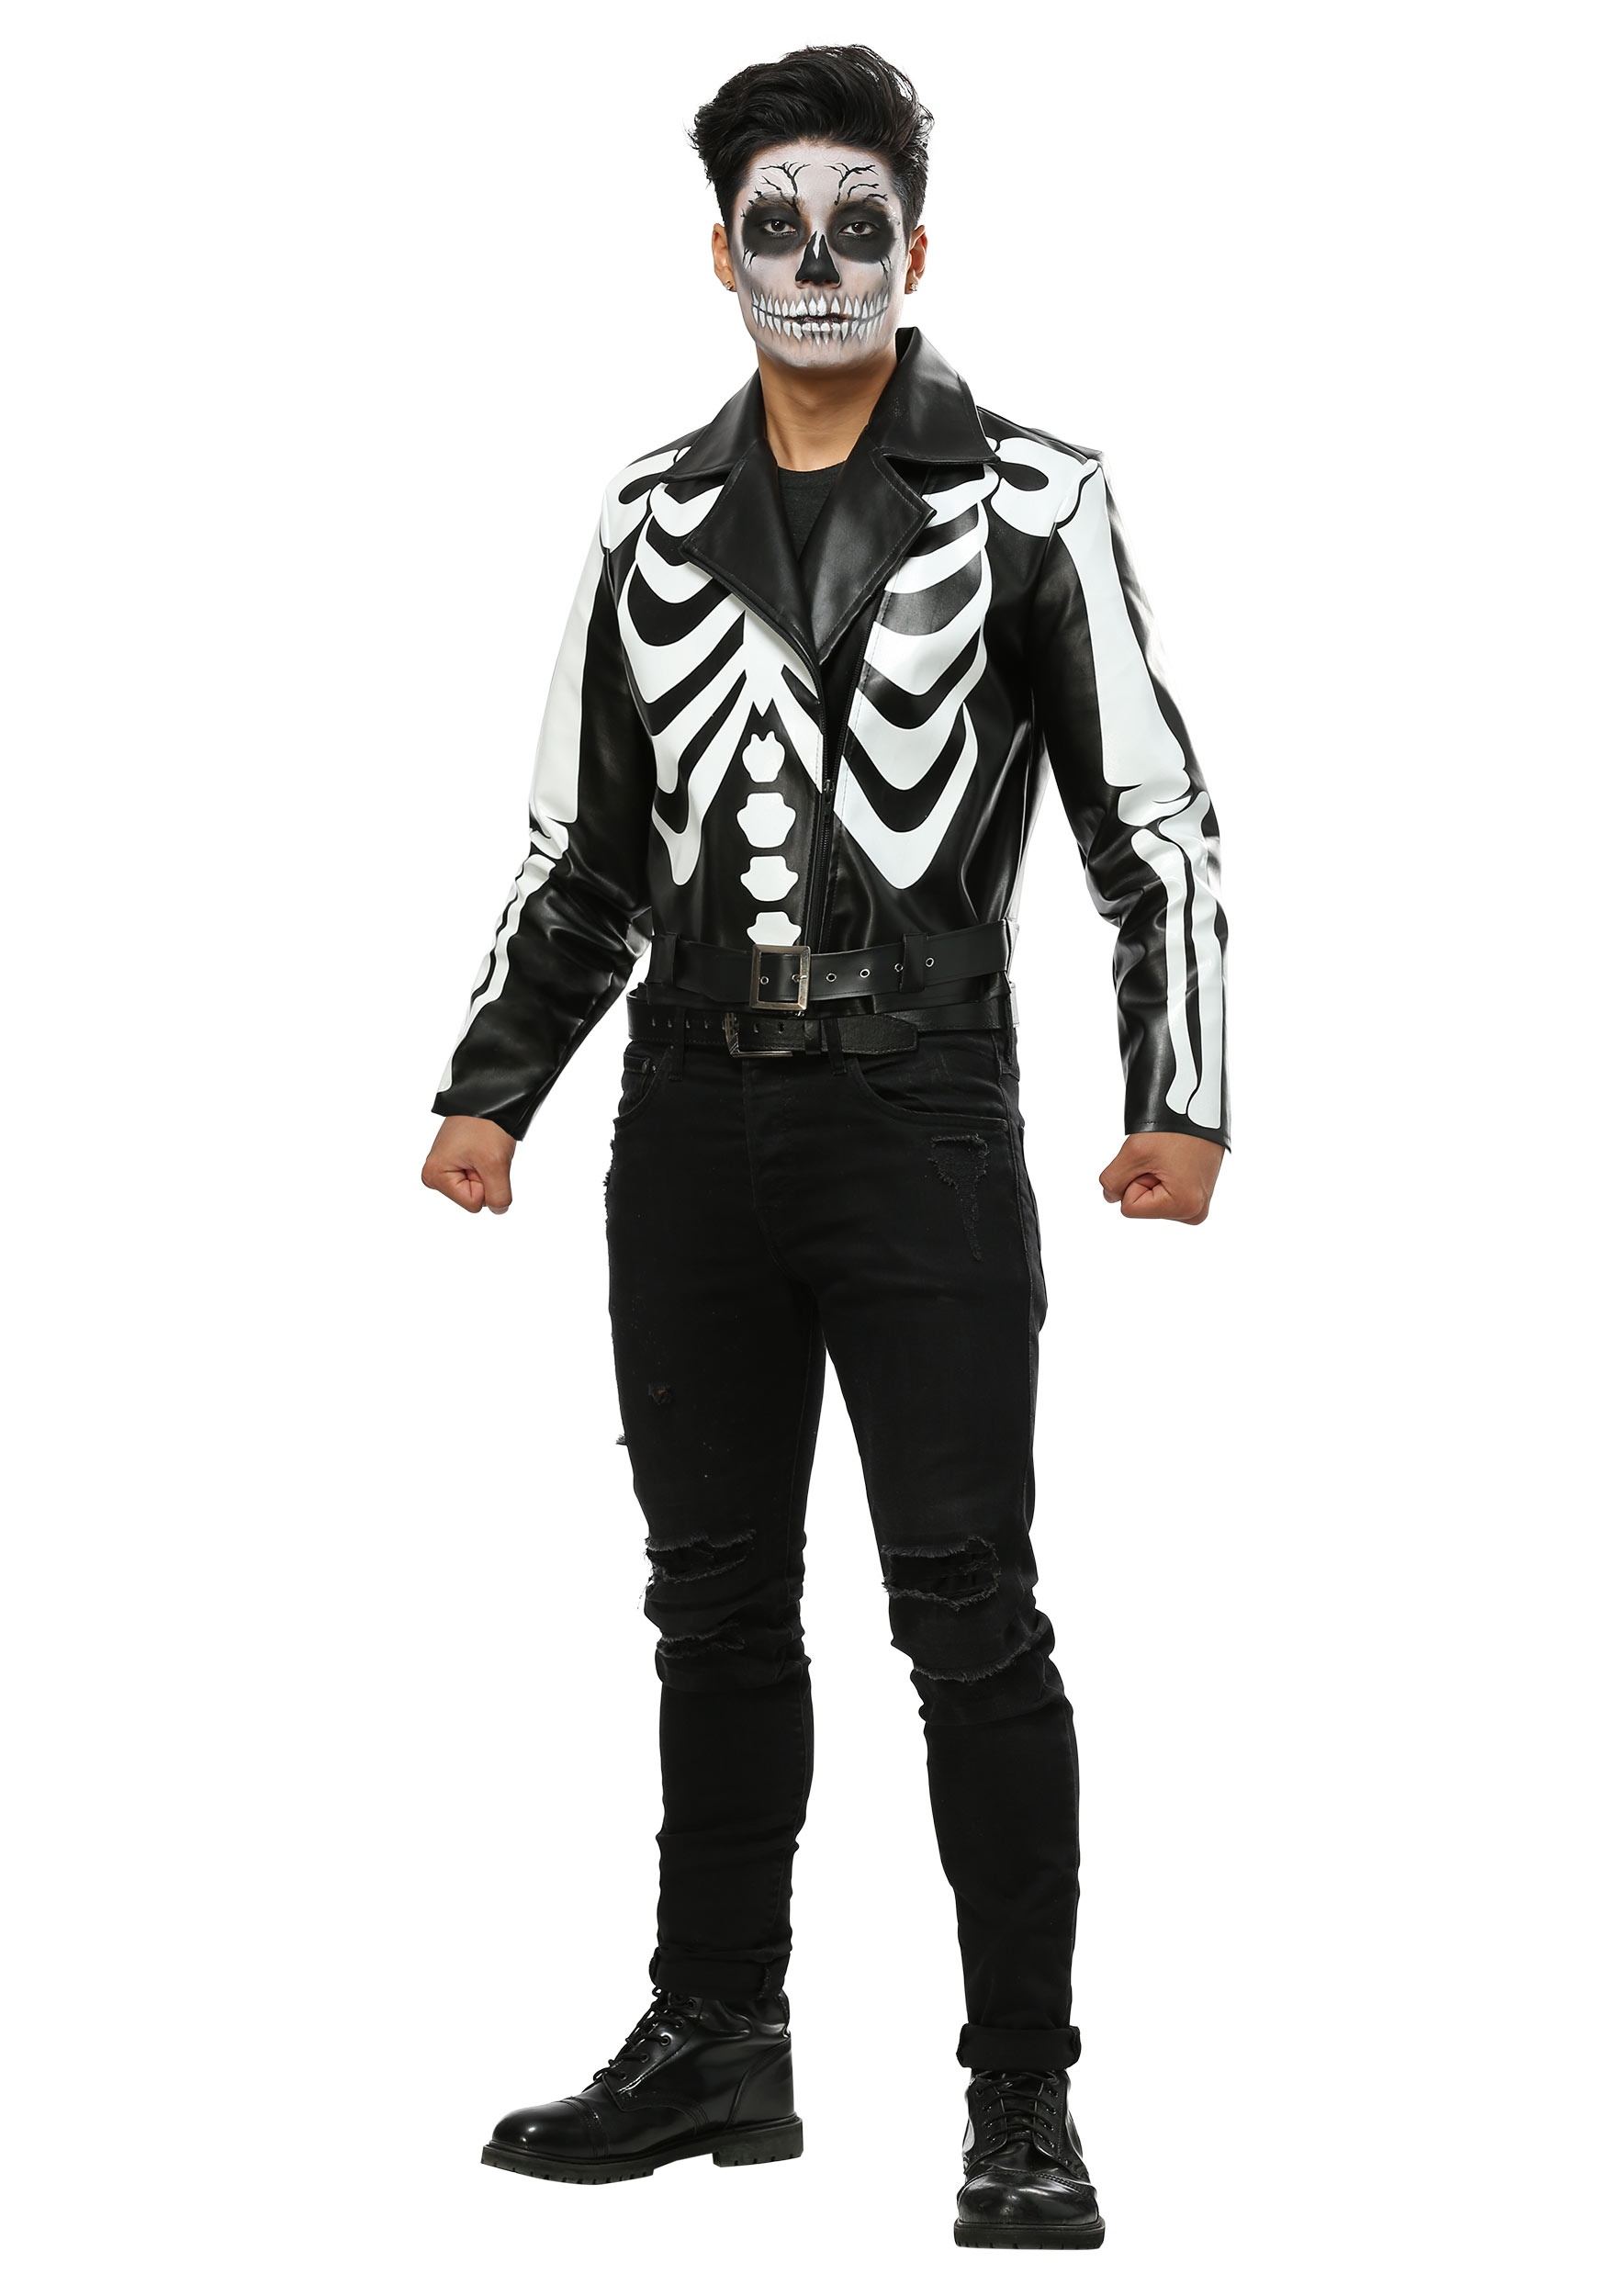 Moto Jacket Skeleton Costume for Men